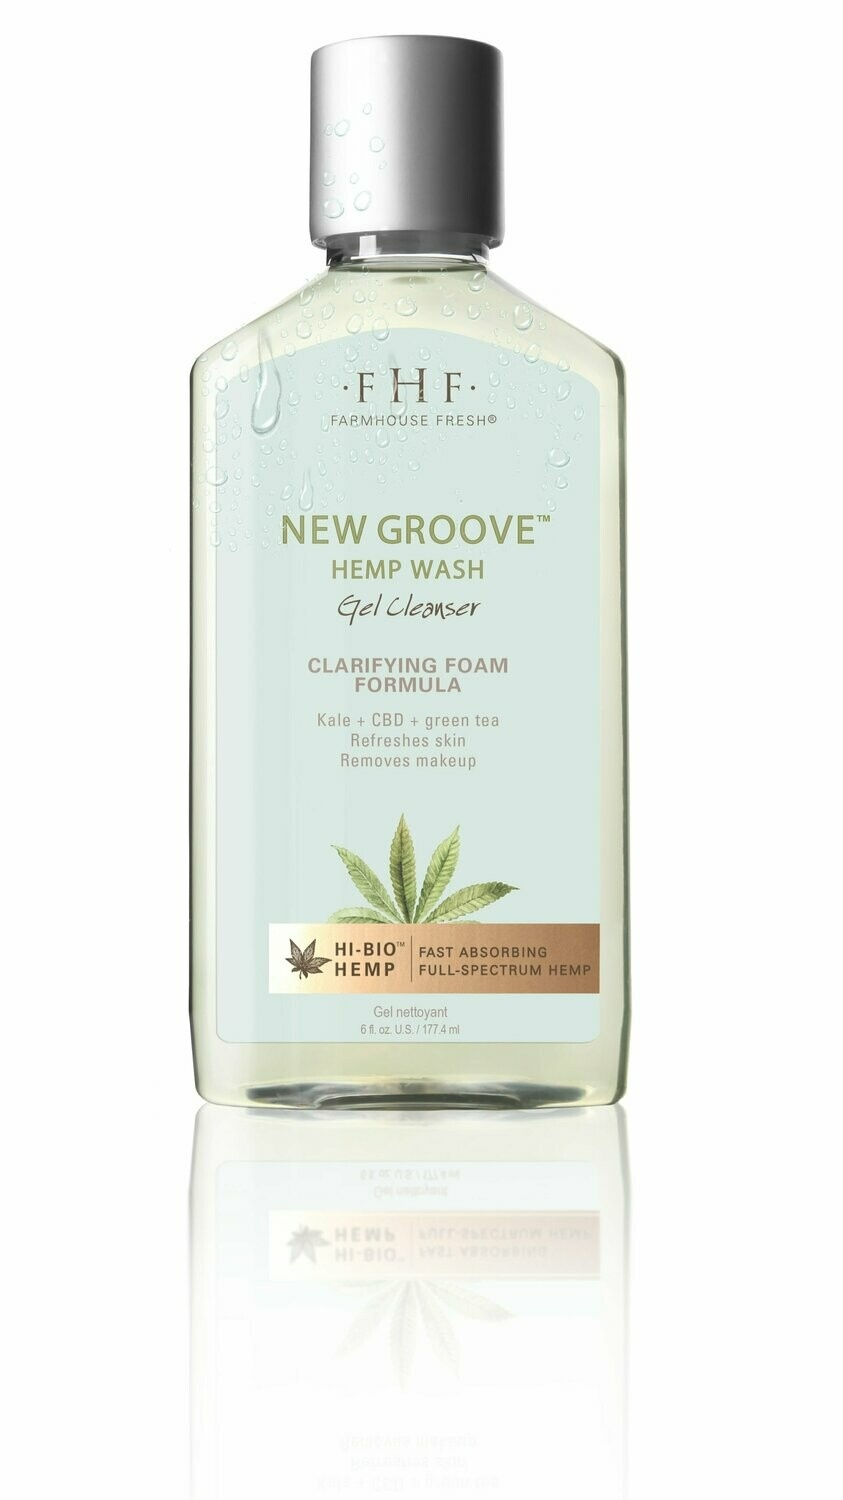 Farmhouse Fresh New Groove Hemp Wash Gel Cleanser 6 oz